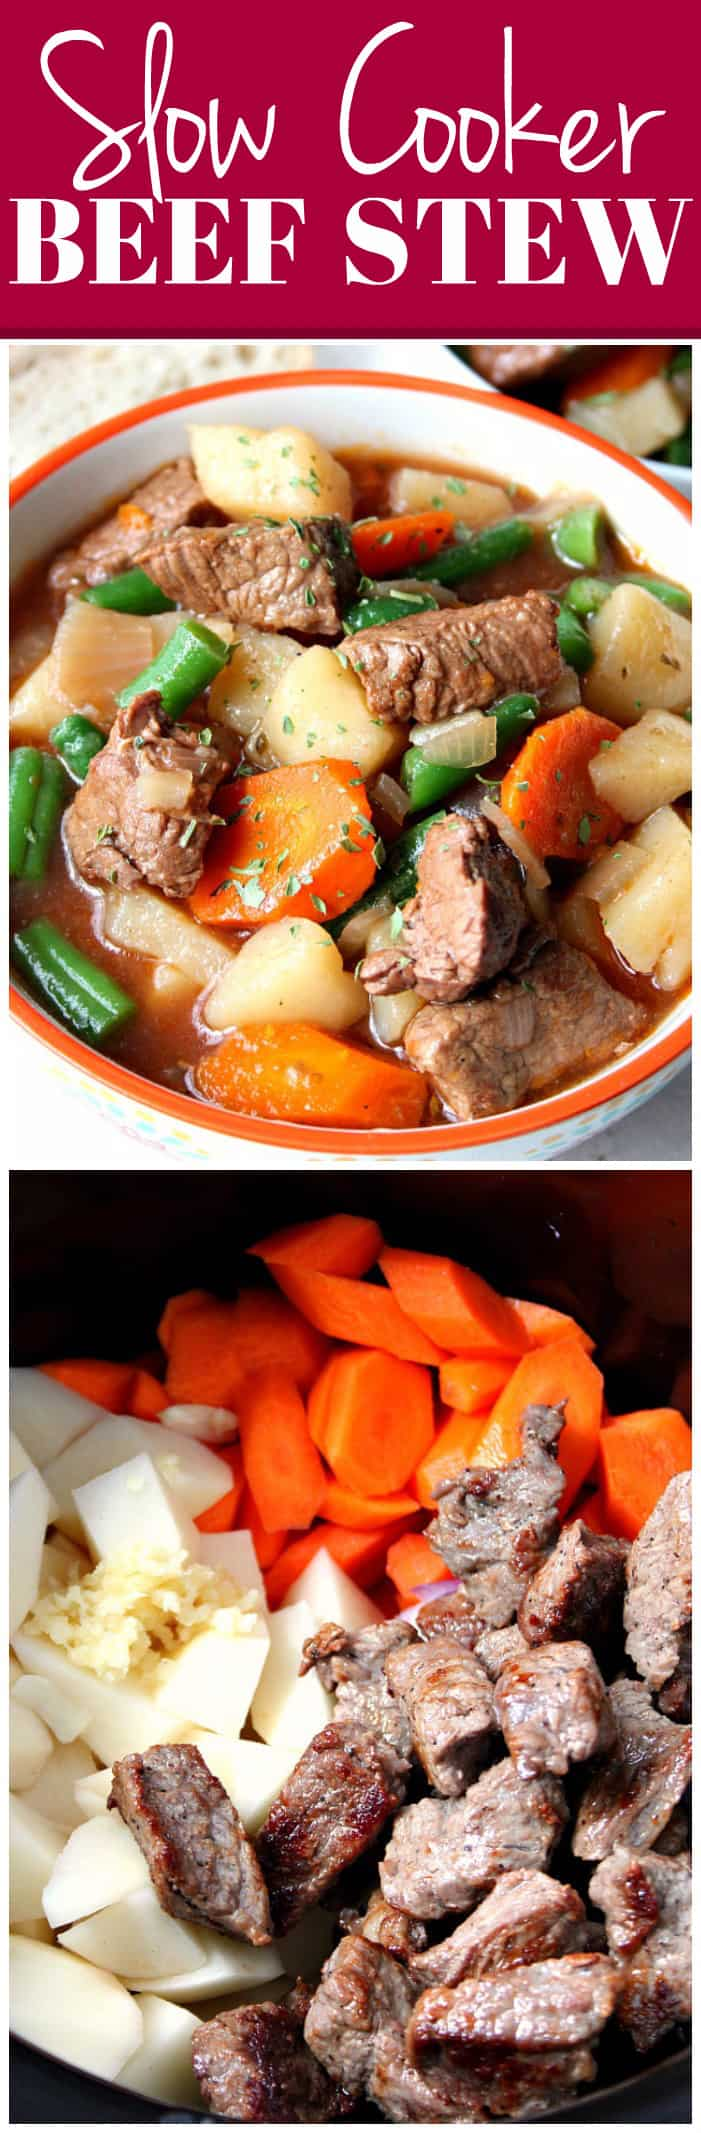 slow cooker beef stew recipe long1 Slow Cooker Beef Stew Recipe